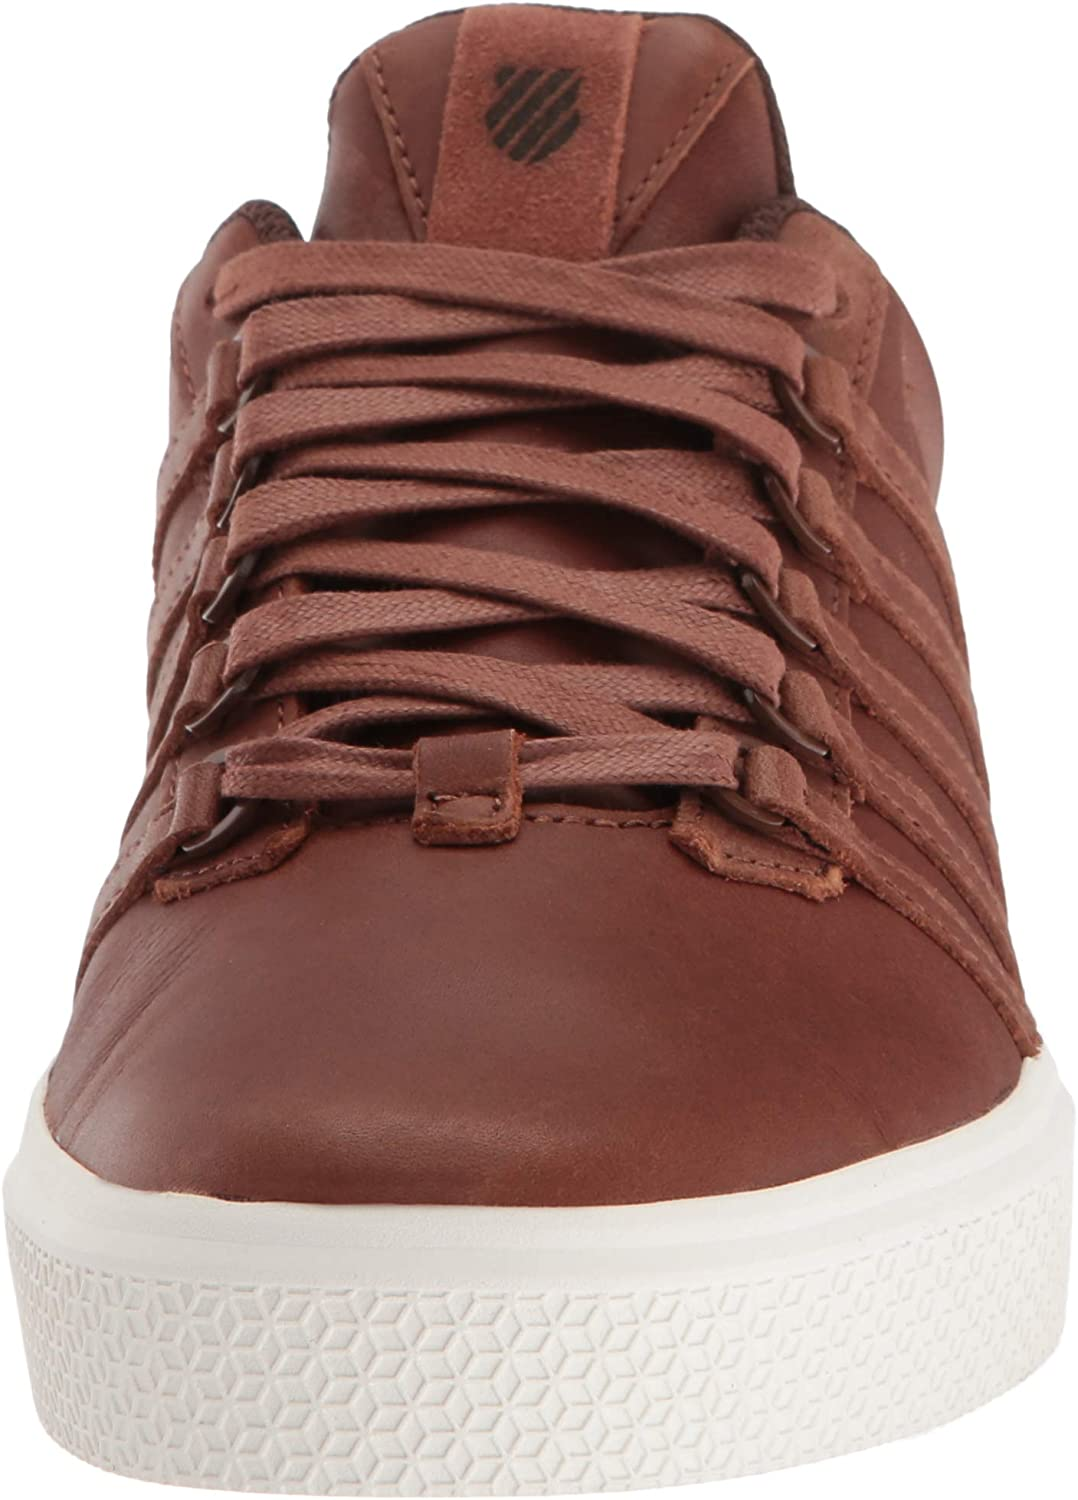 K-Swiss Donovan P, Chaussons Bas Homme Rouge Tortoise Shell Chocolate 279